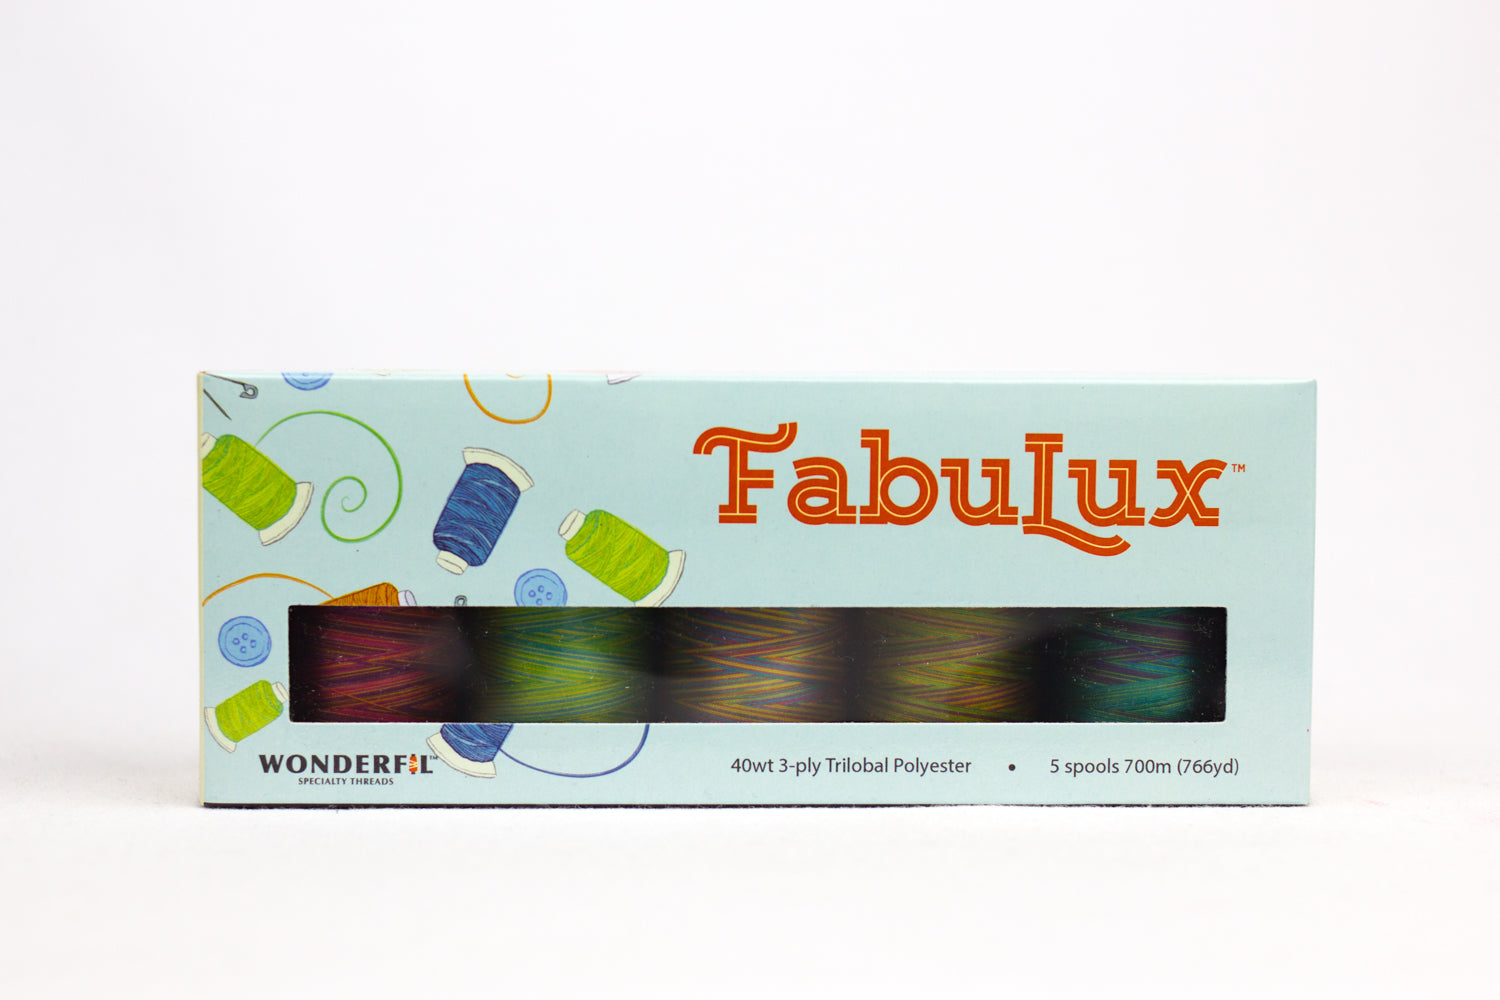 FabuLux Pack -- Tropical